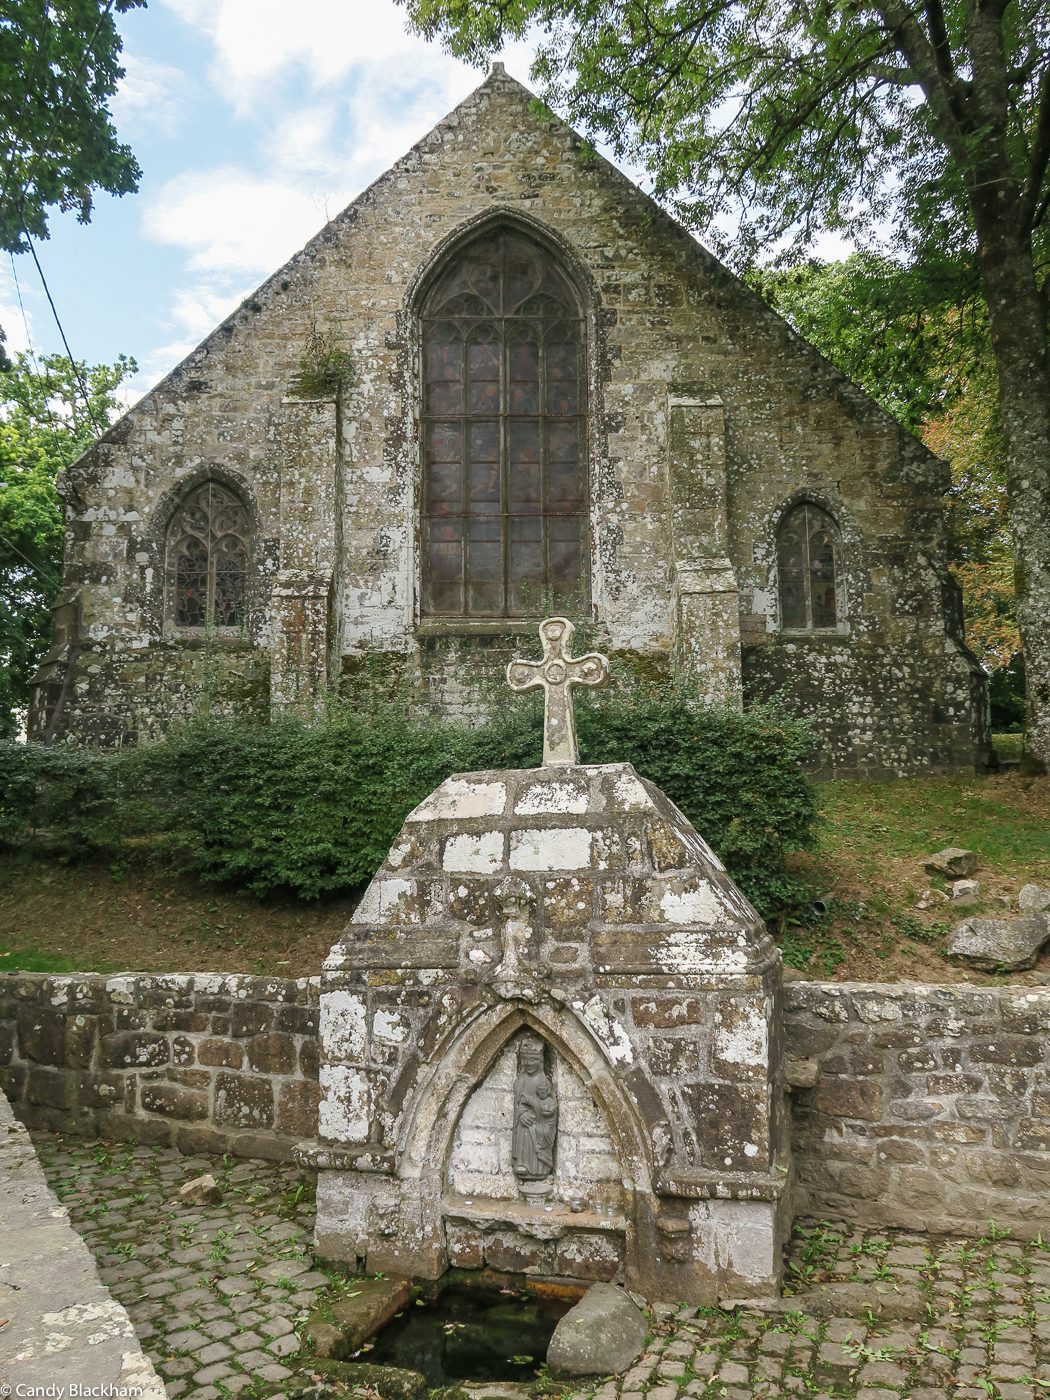 The Chapel of La Fontaine Blanche